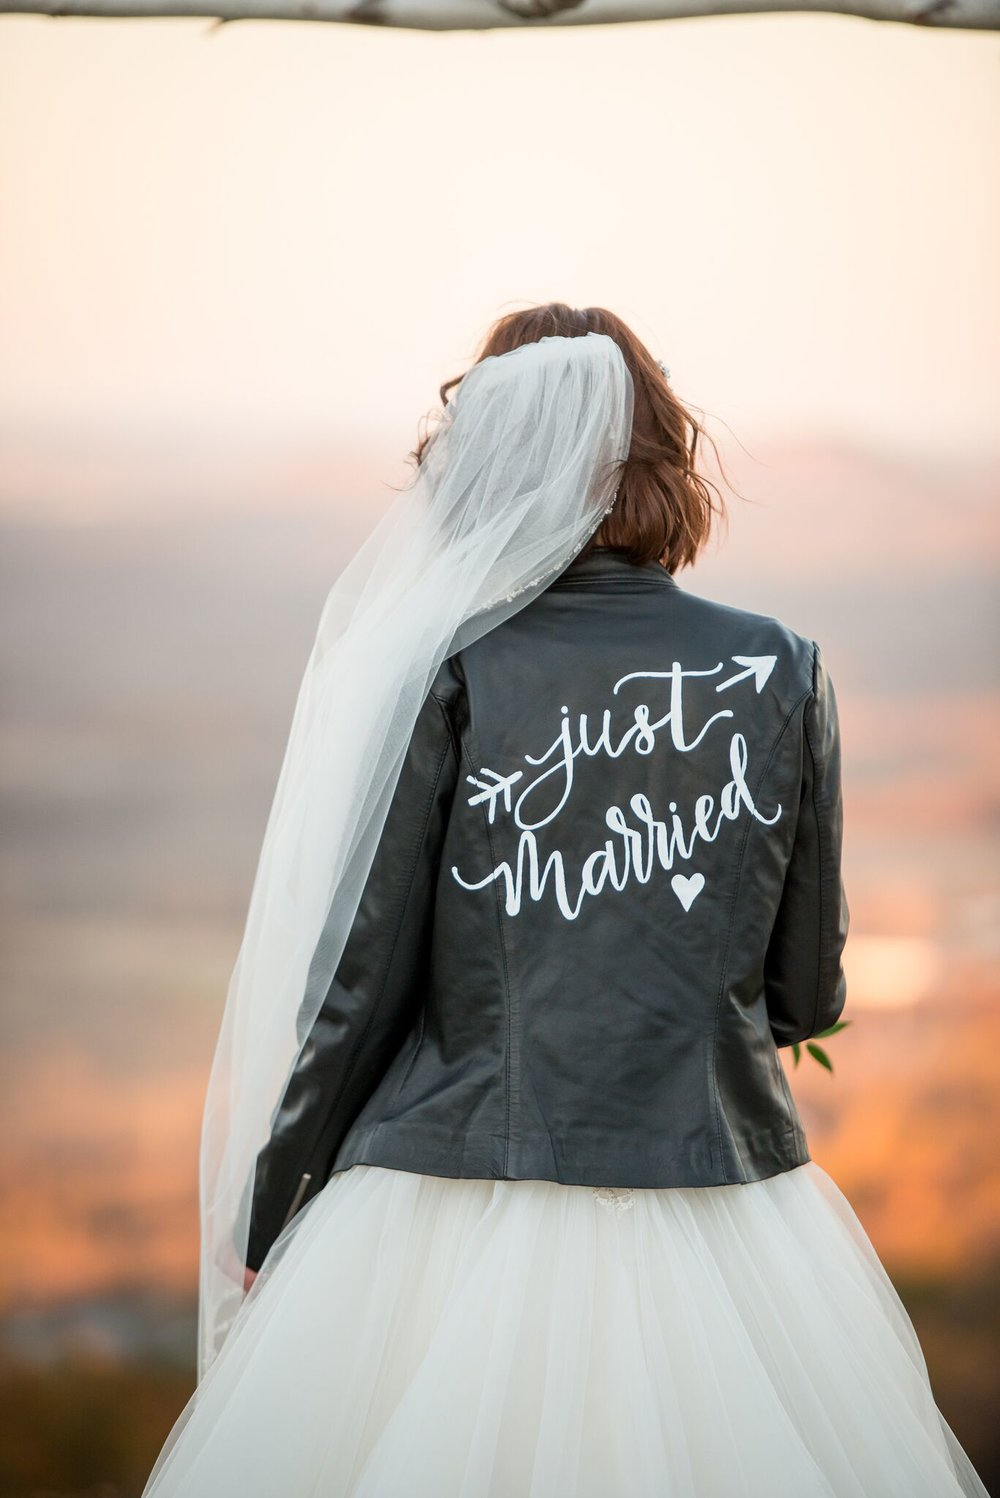 Leather Jacket Calligraphy by Paperloveme4.jpeg